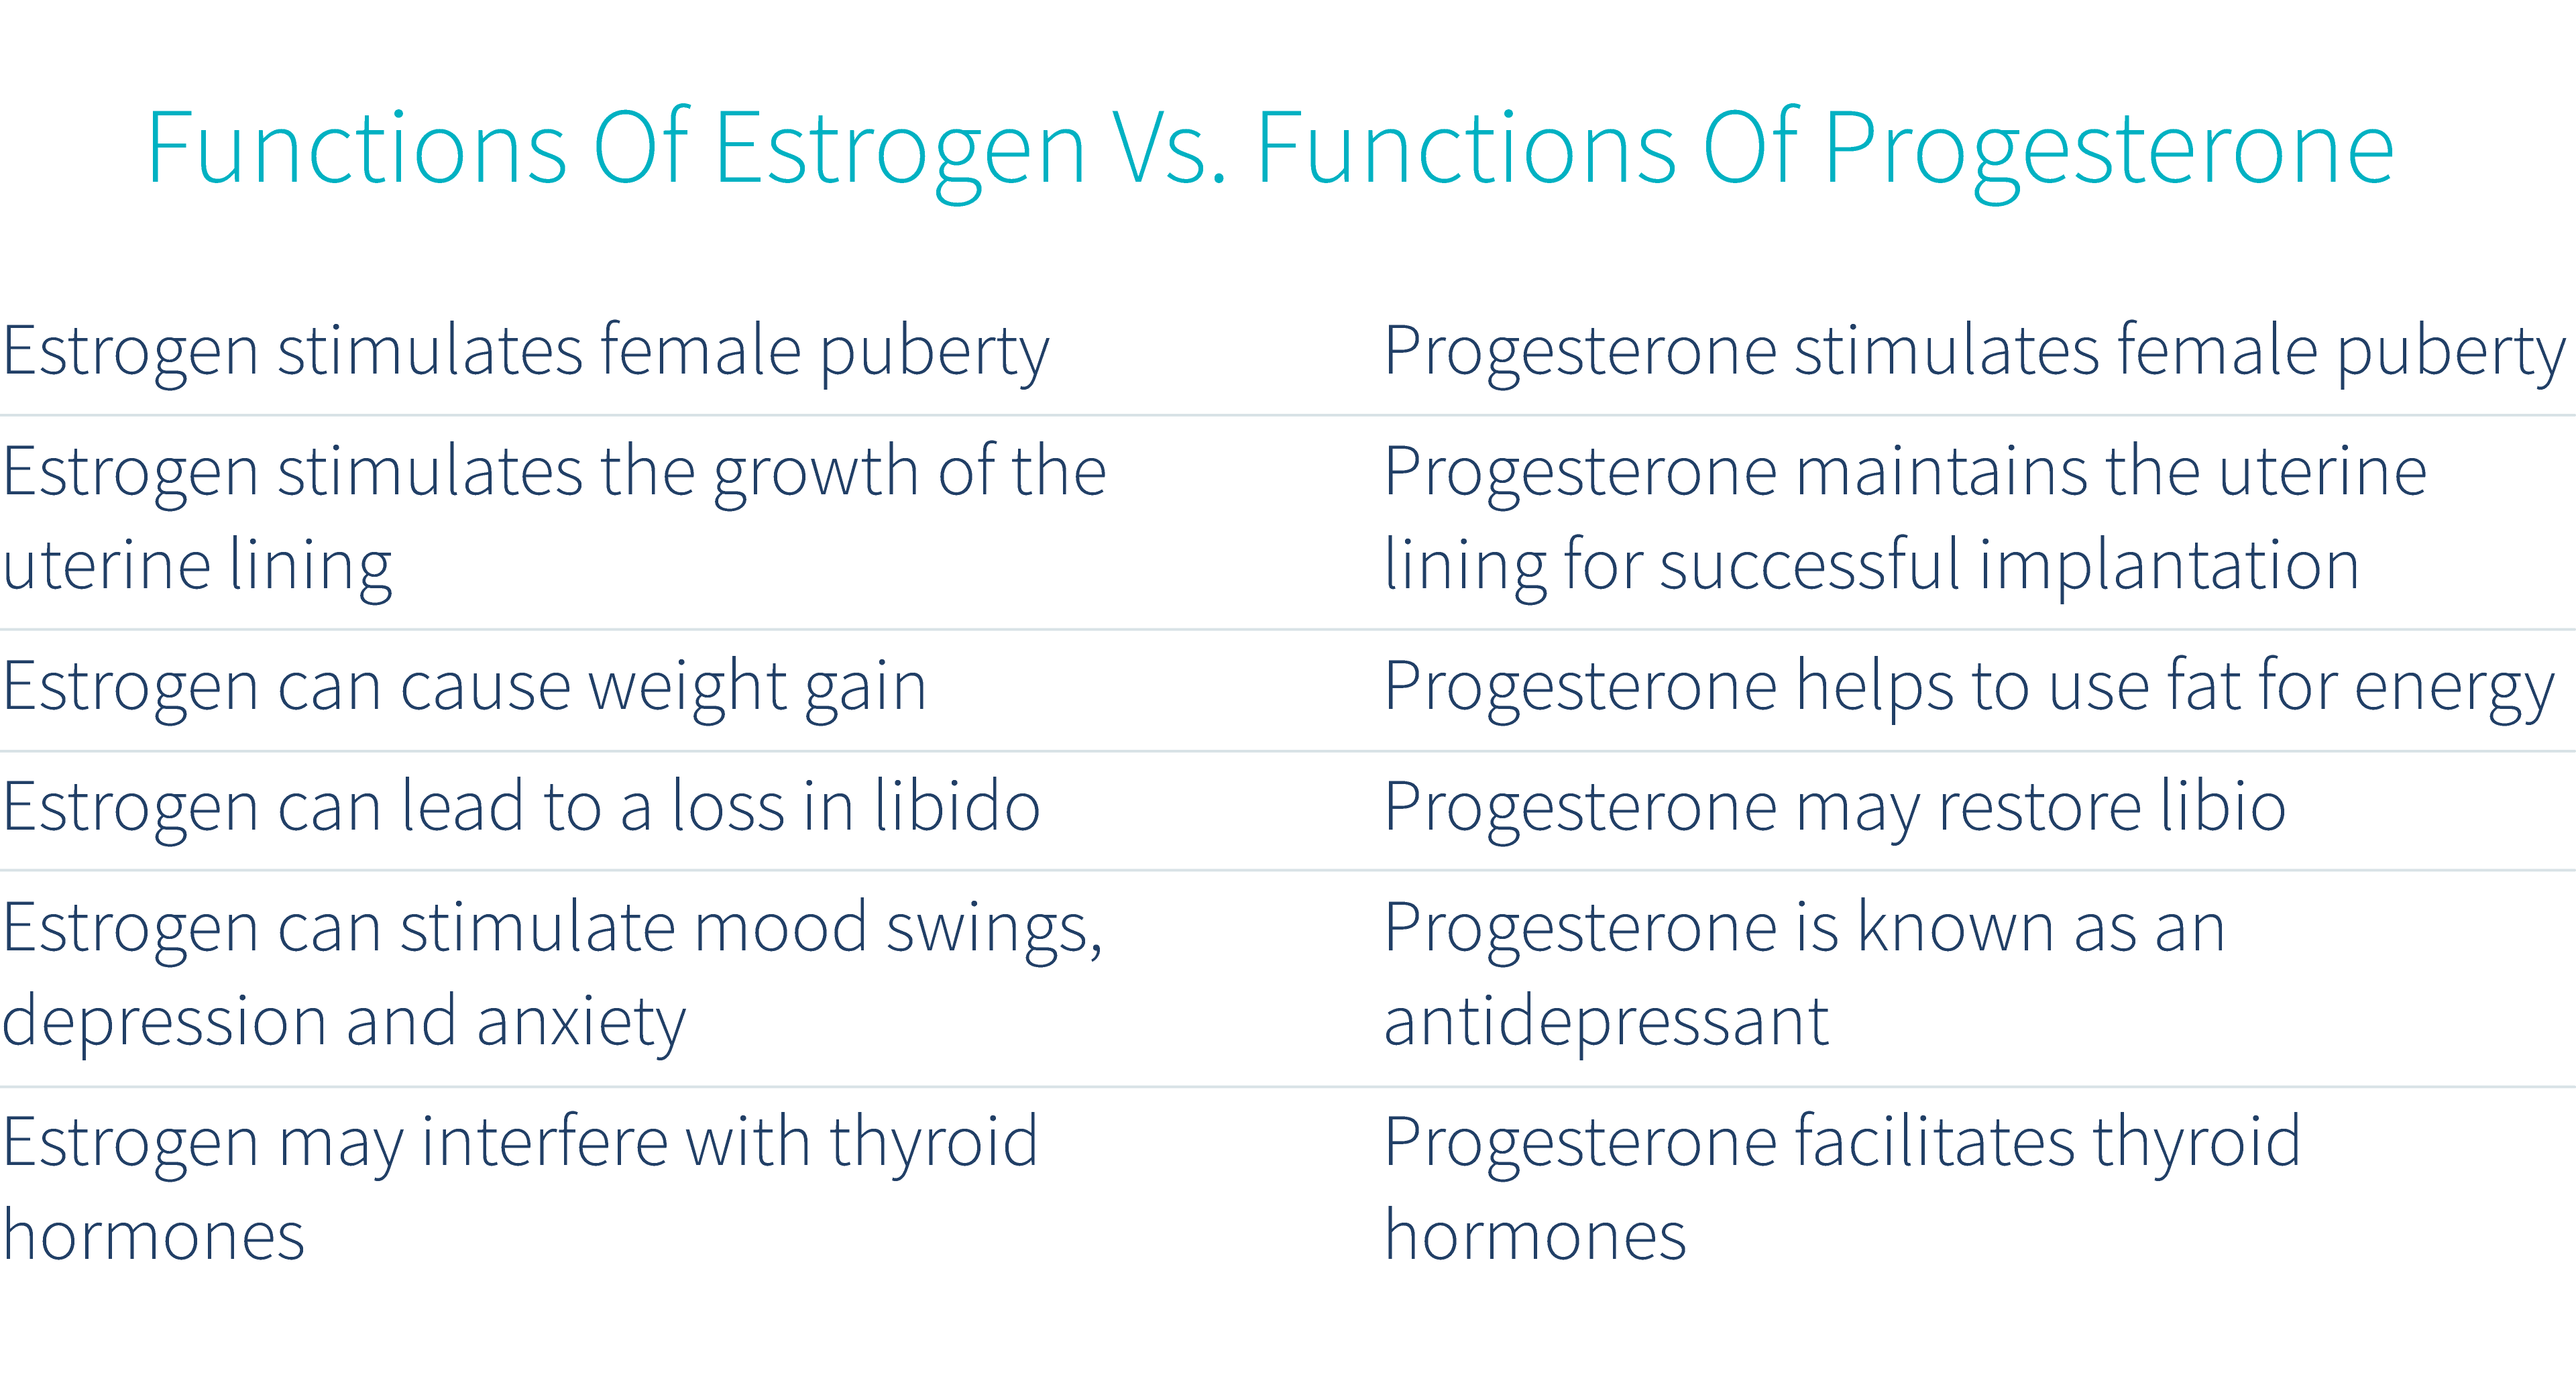 functions-of-estrogen-vs-progesterone